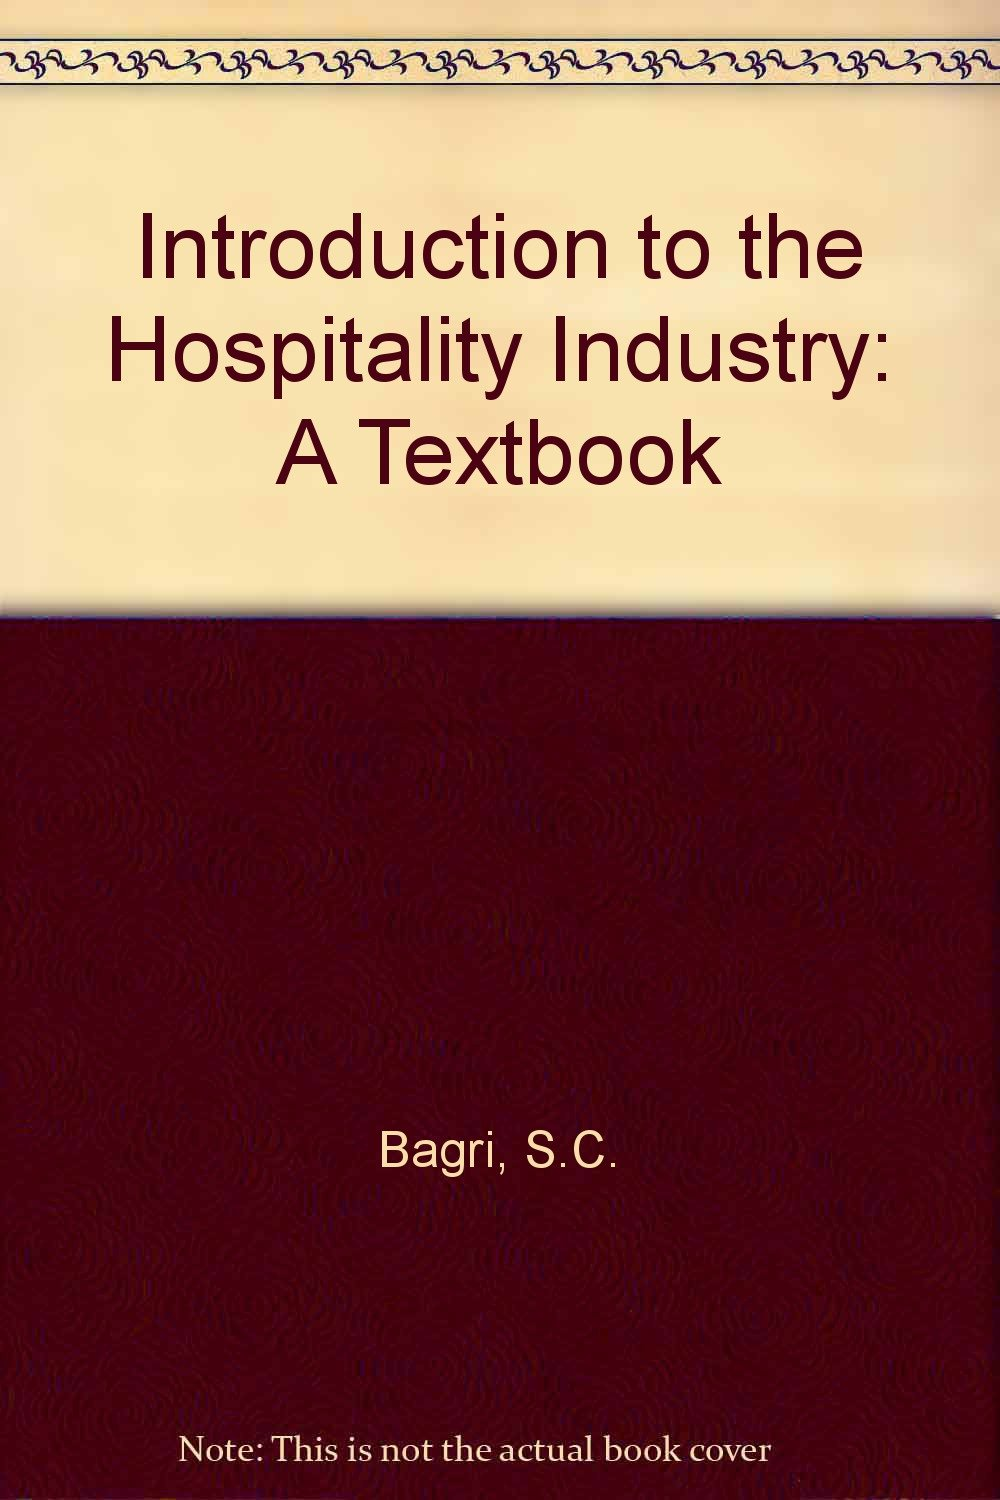 Introduction to the Hospitality Industry: A Textbook PDF